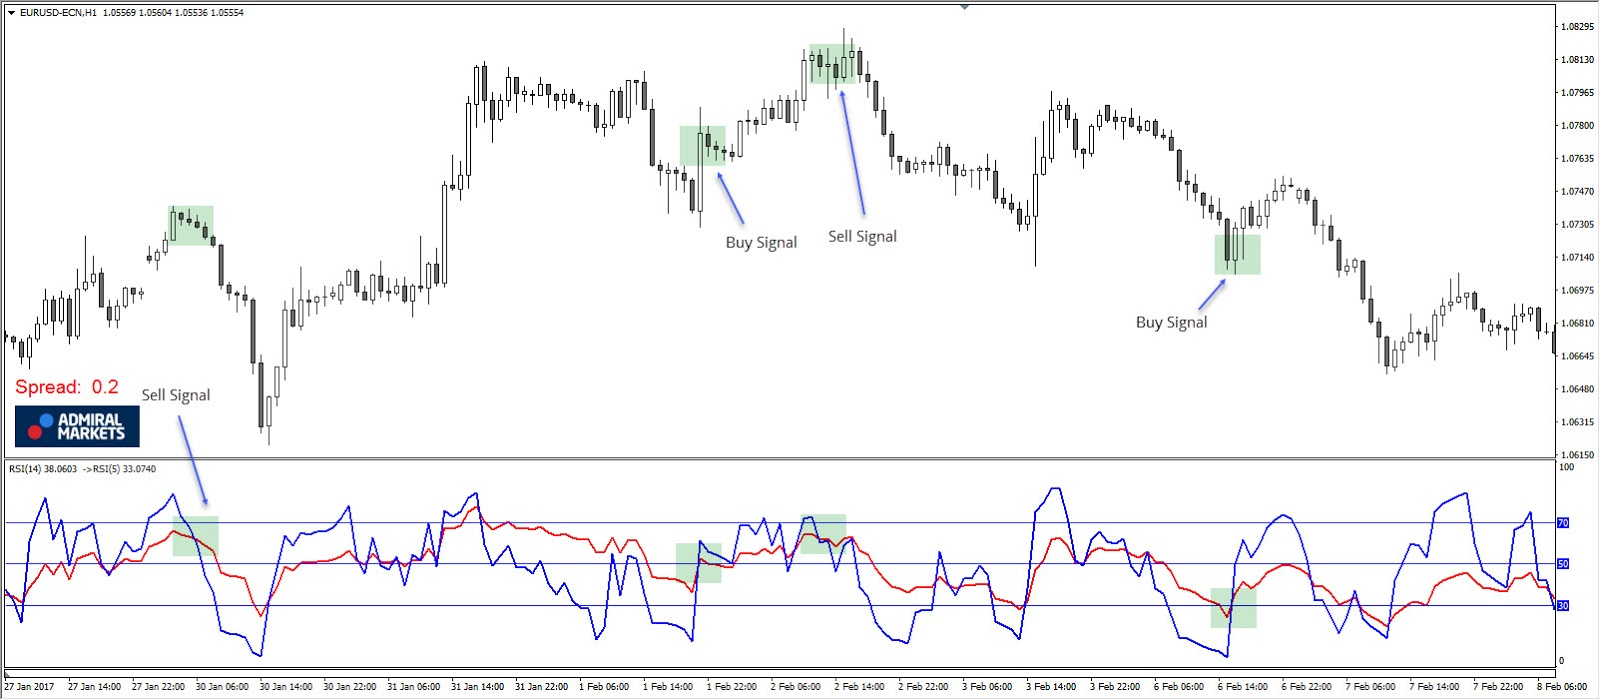 RSI Two Period Divergence